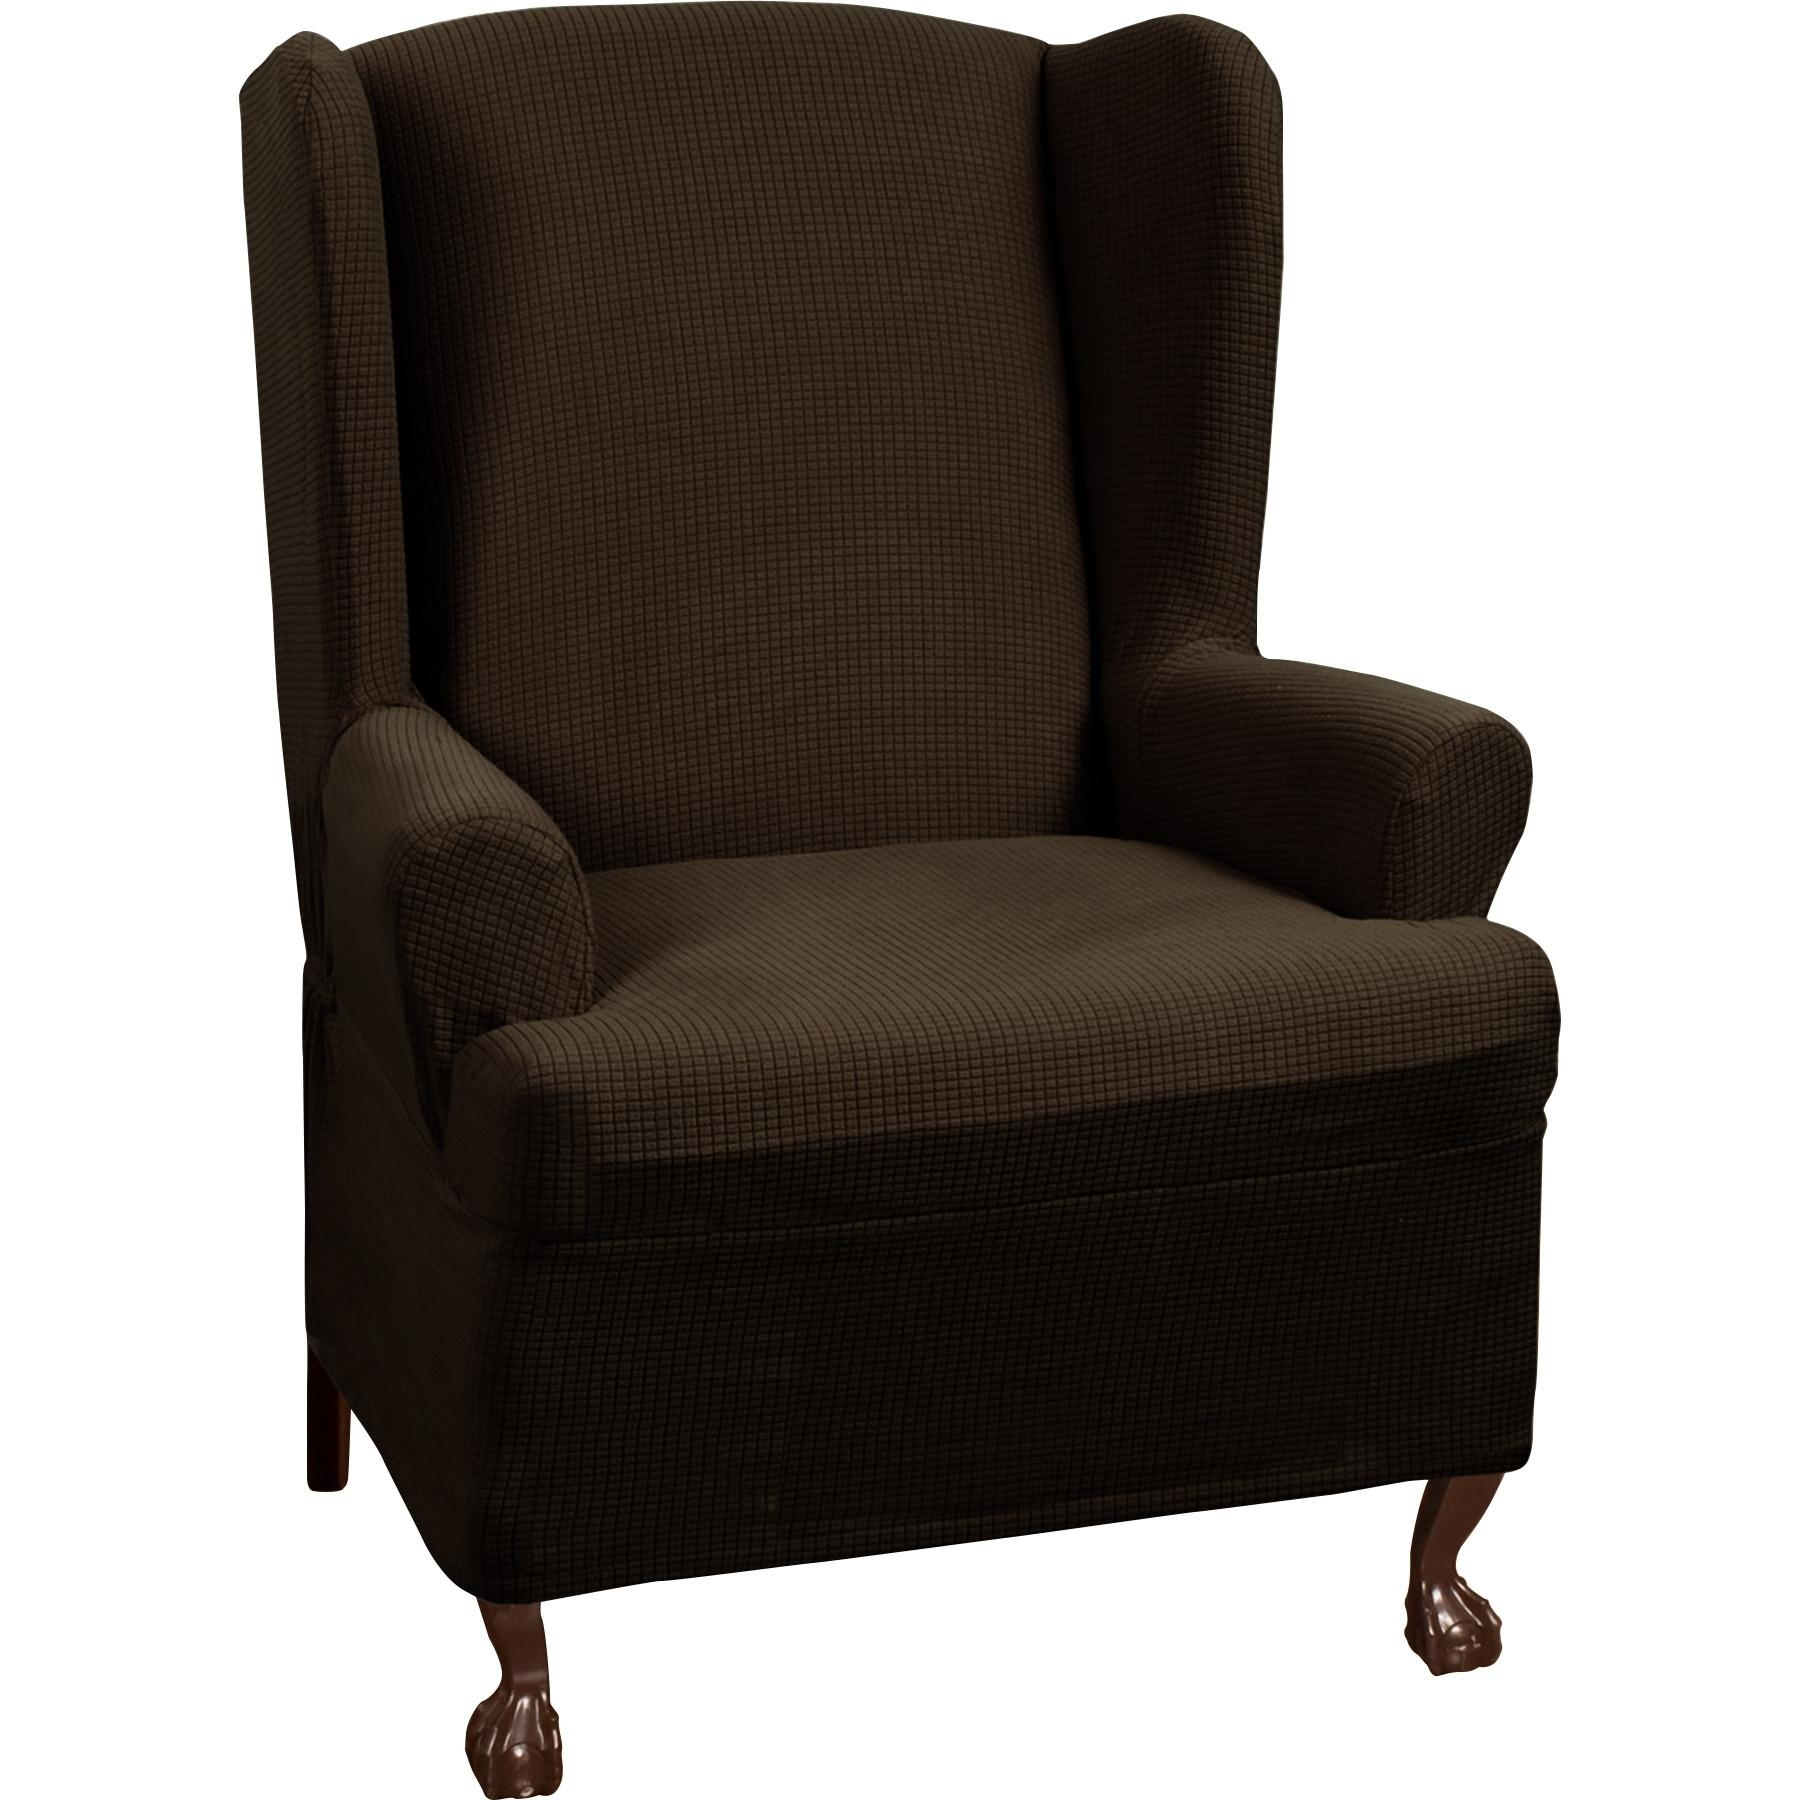 Furniture: Cheap Slipcovers | Armless Chair Slipcover | Recliner Pertaining To Armless Slipcovers (View 13 of 20)